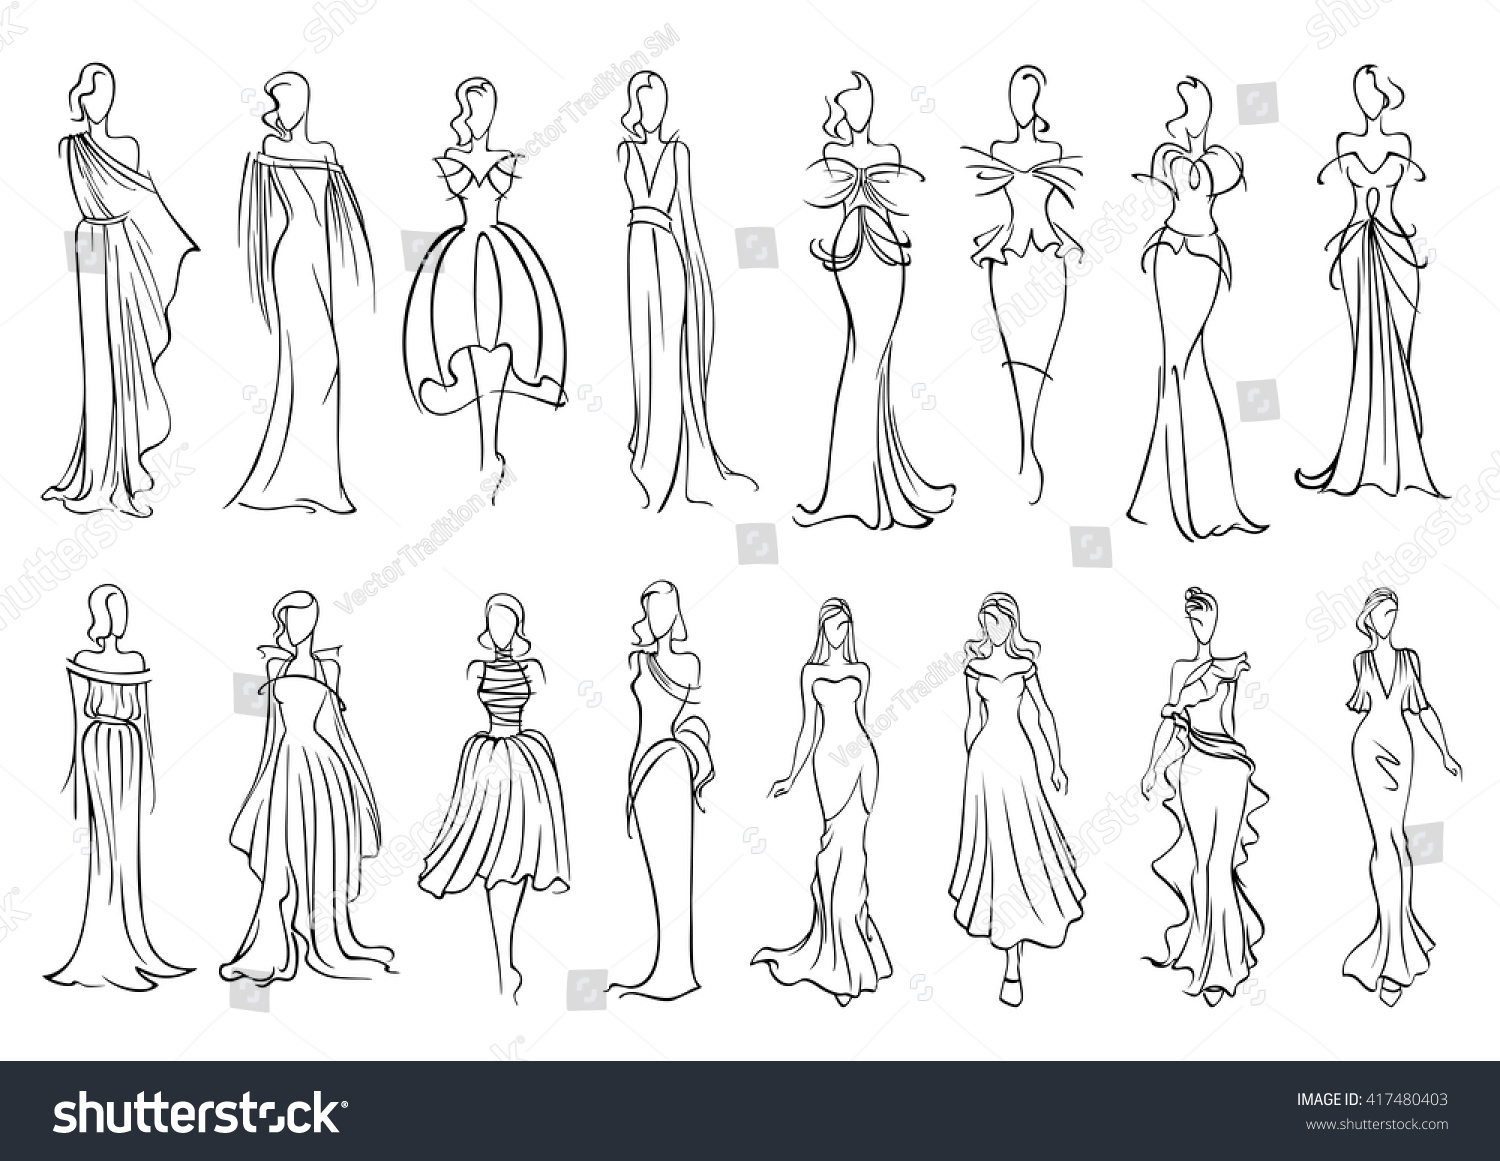 Line Silhouettes In Fashion Design : Fashion models sketched silhouettes elegant young stock